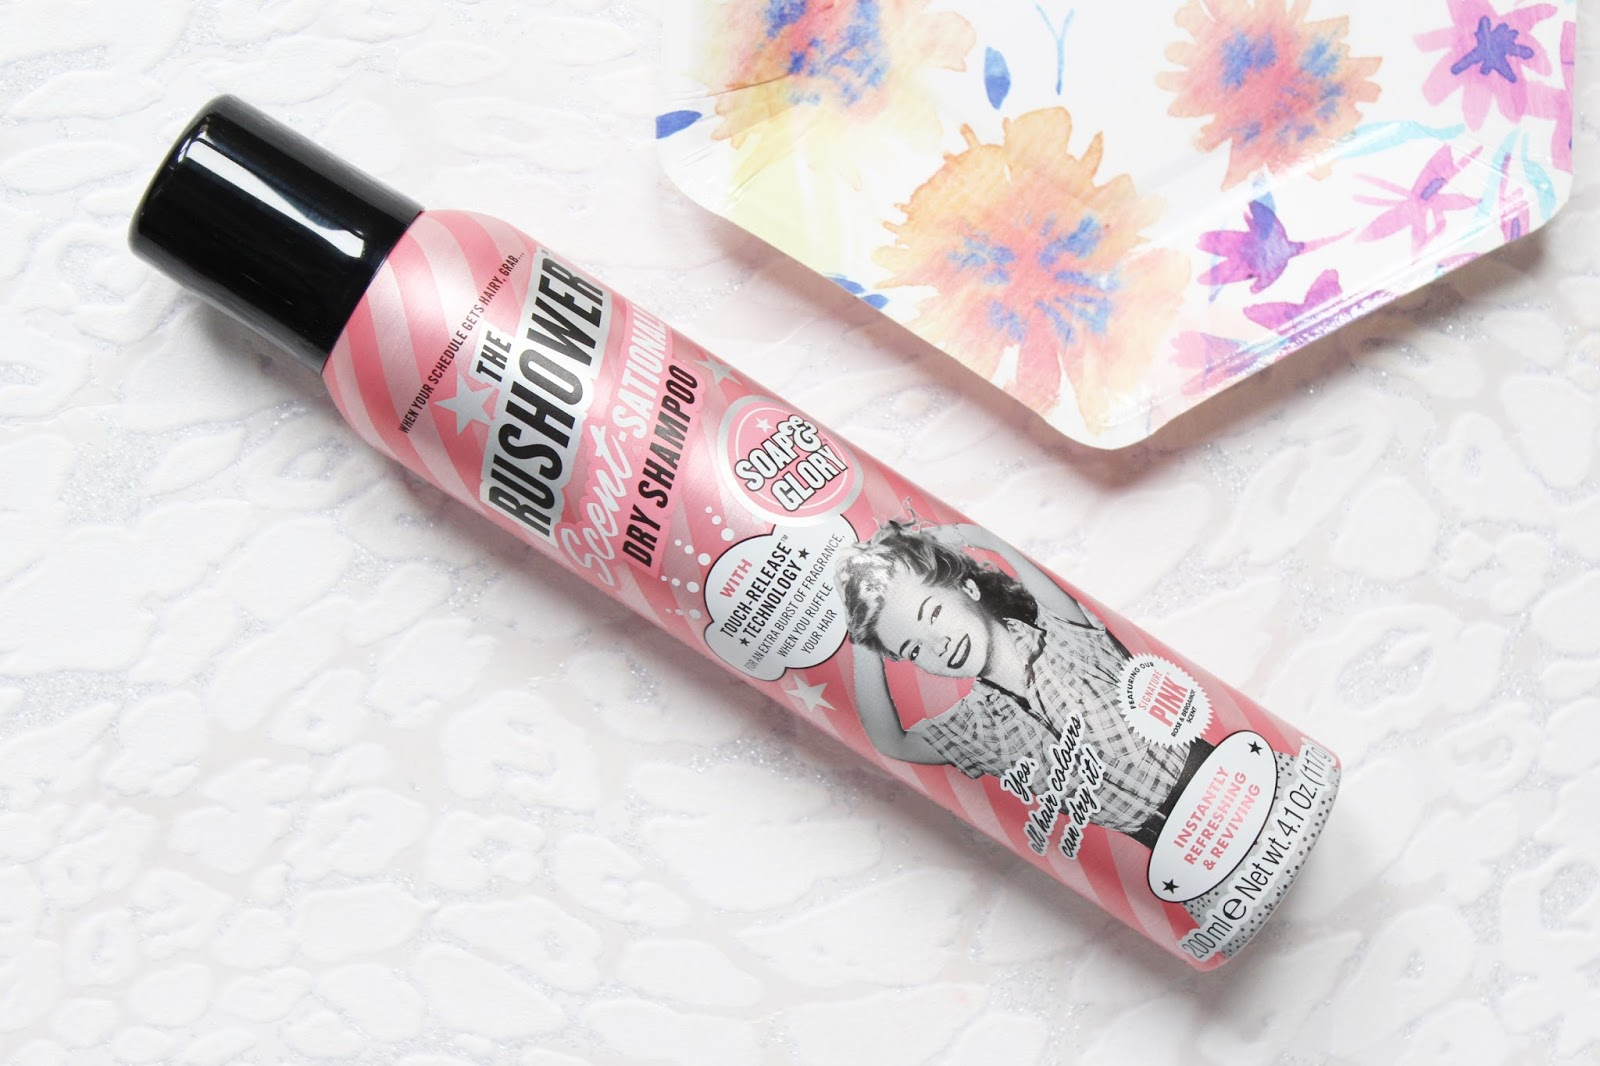 Soap and Glory The Rushower Dry Shampoo